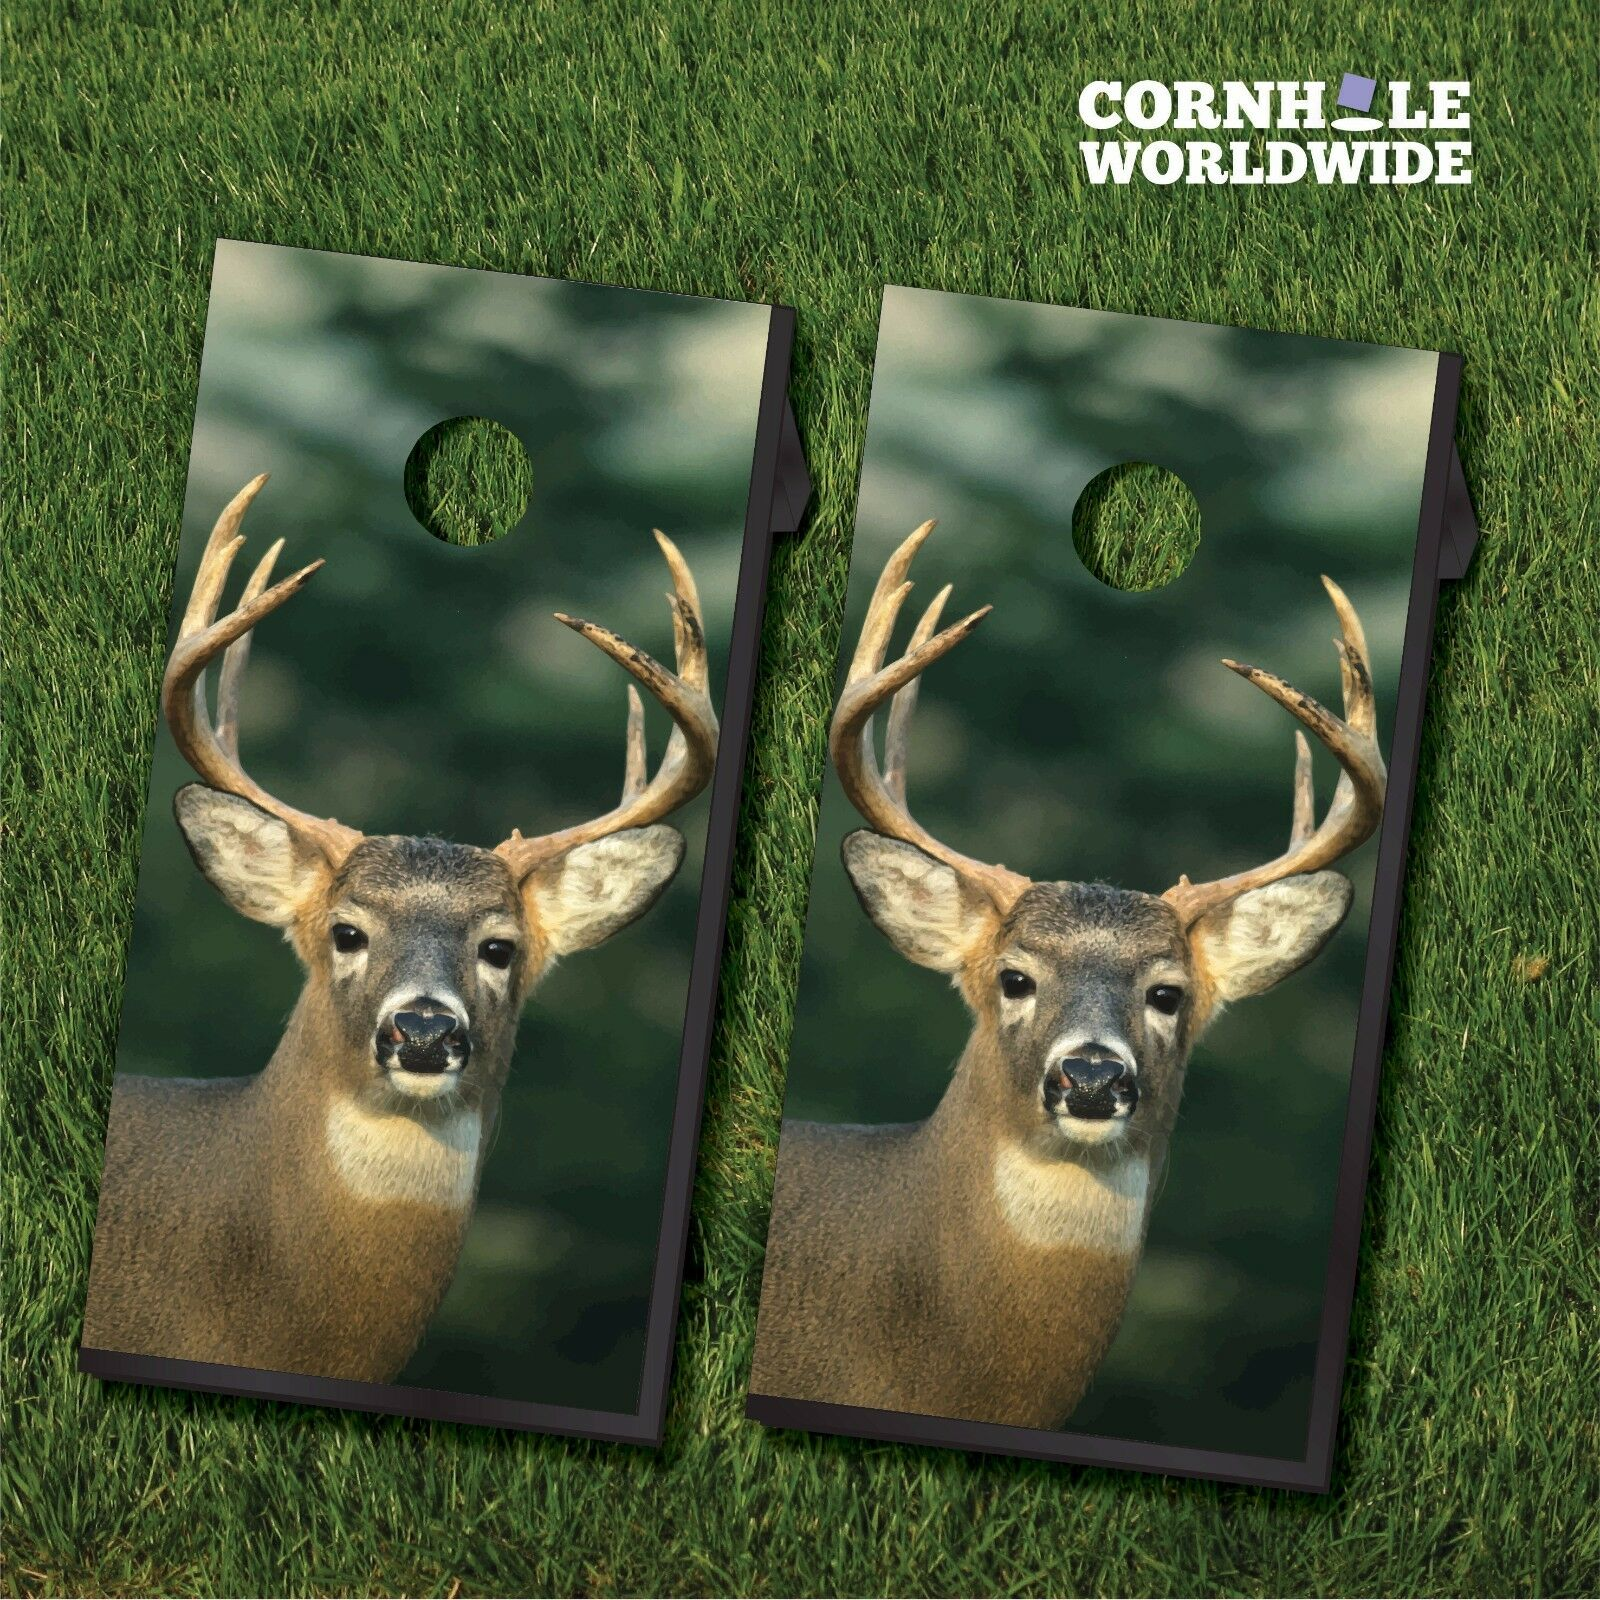 Deer Hunting Cornhole set w 8 bags